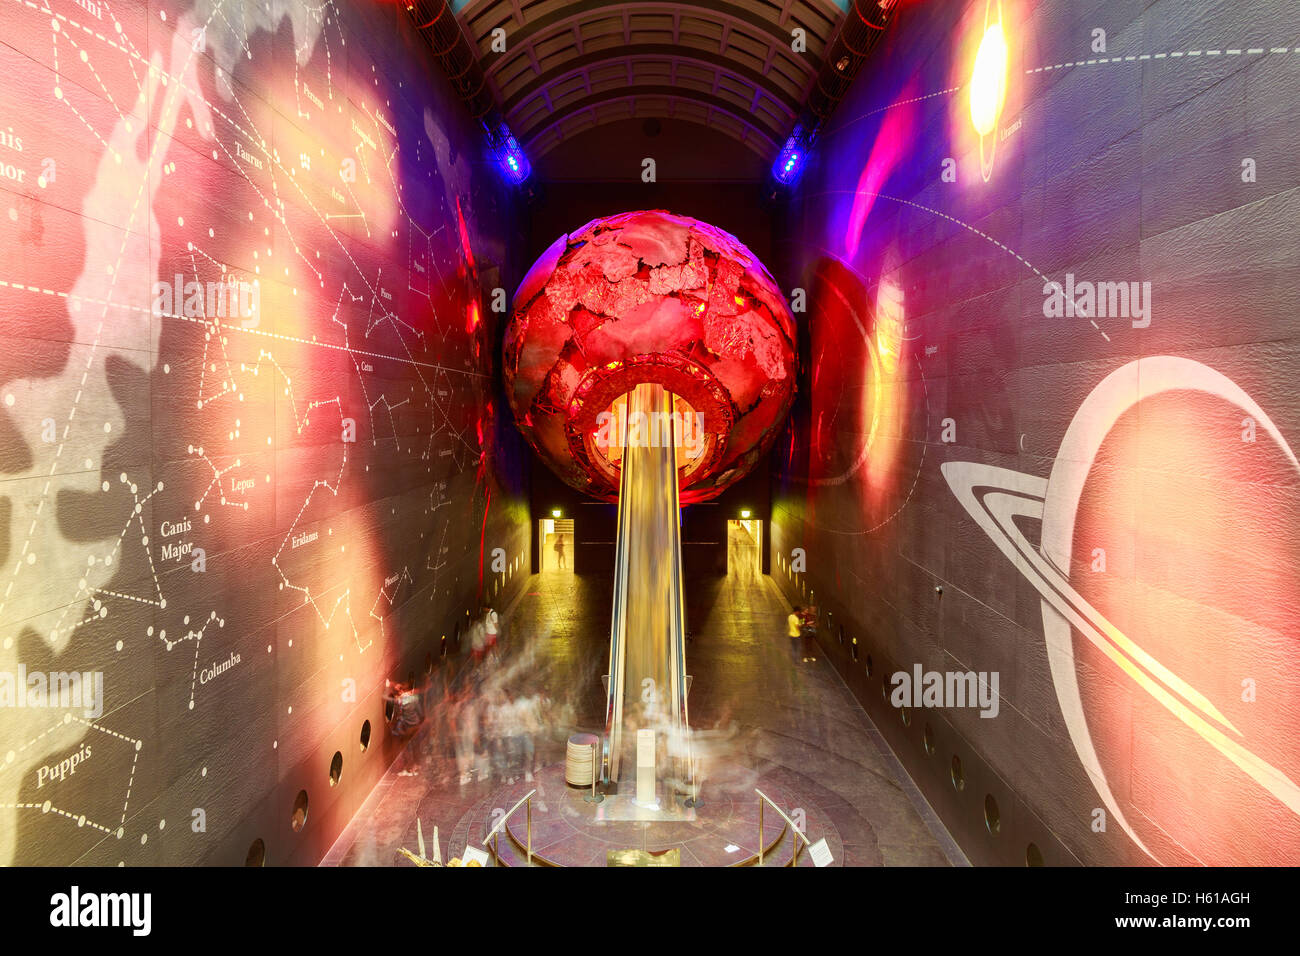 London, UK - July 28, 2016 - The entrance to the Earth Galleries in the Natural History Museum - Stock Image